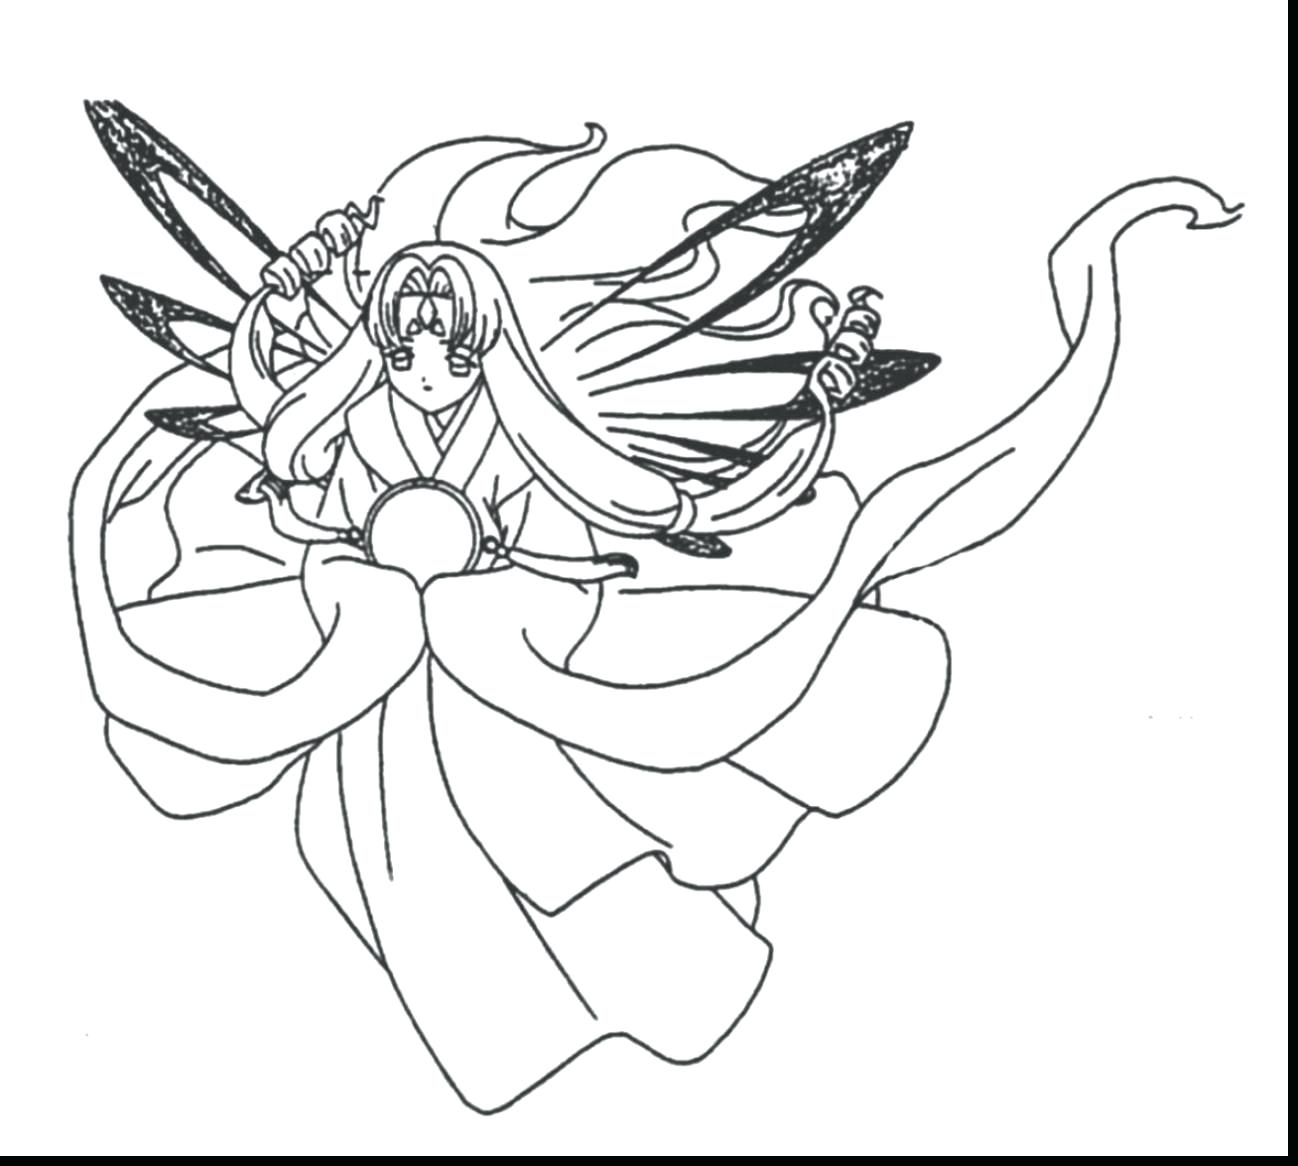 1298x1166 coloring Anime Coloring Pages For Adults Terrific Detailed With